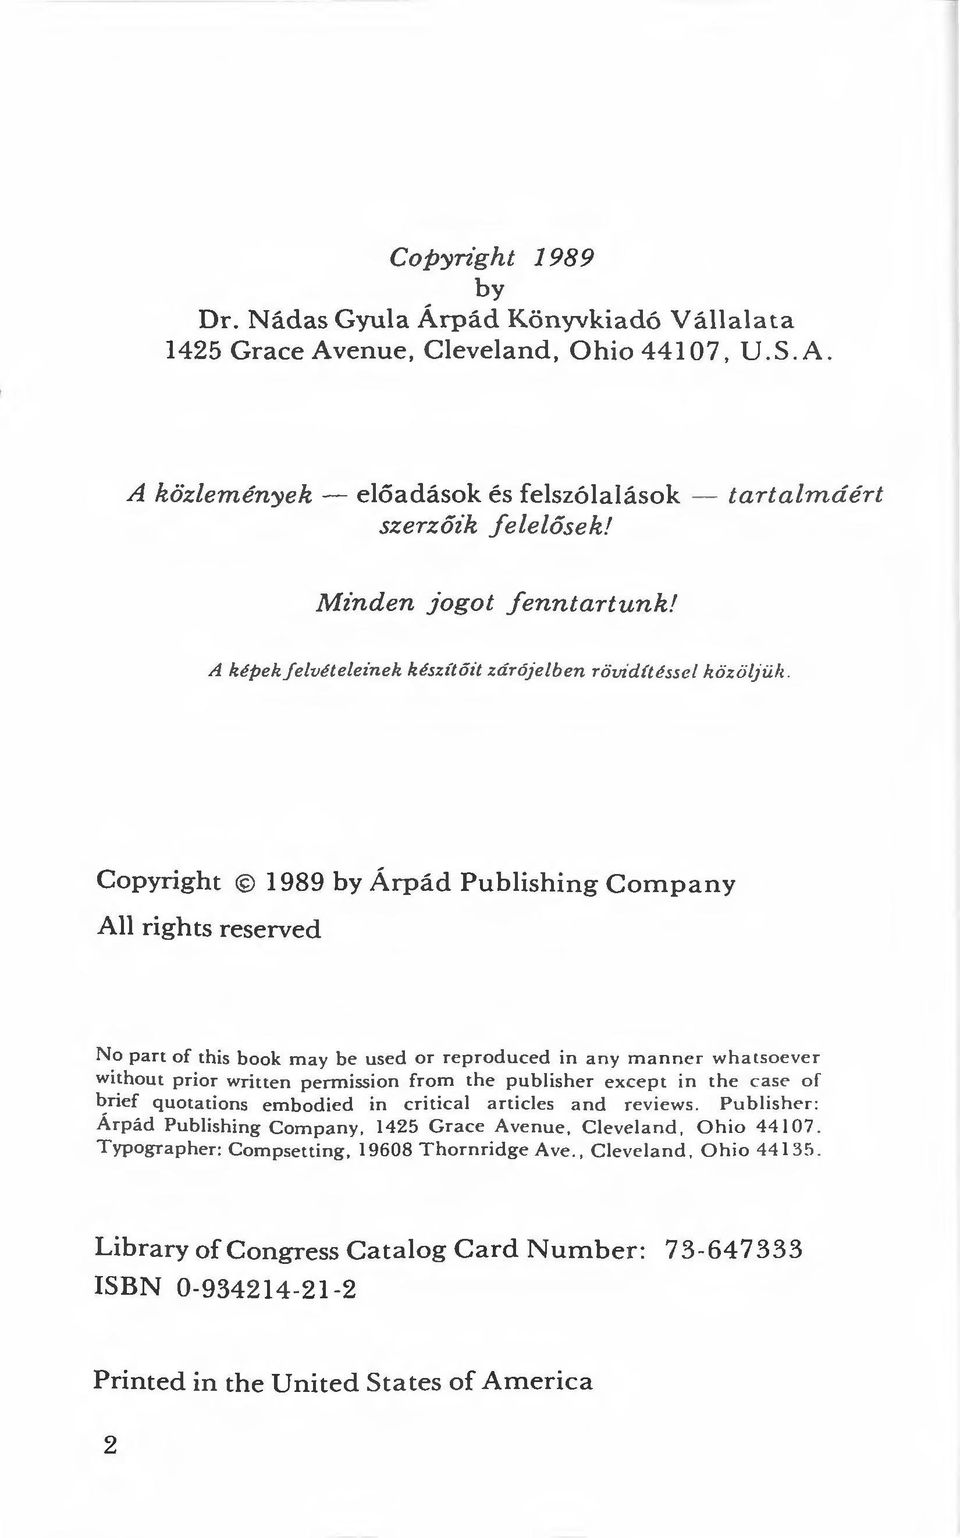 Copyright 1989 by Árpád Publishing Company All rights reserved No pan of th is book may be used or reproduced in any mannc r w h a tsacver without prior written permission fro m the publishe r except